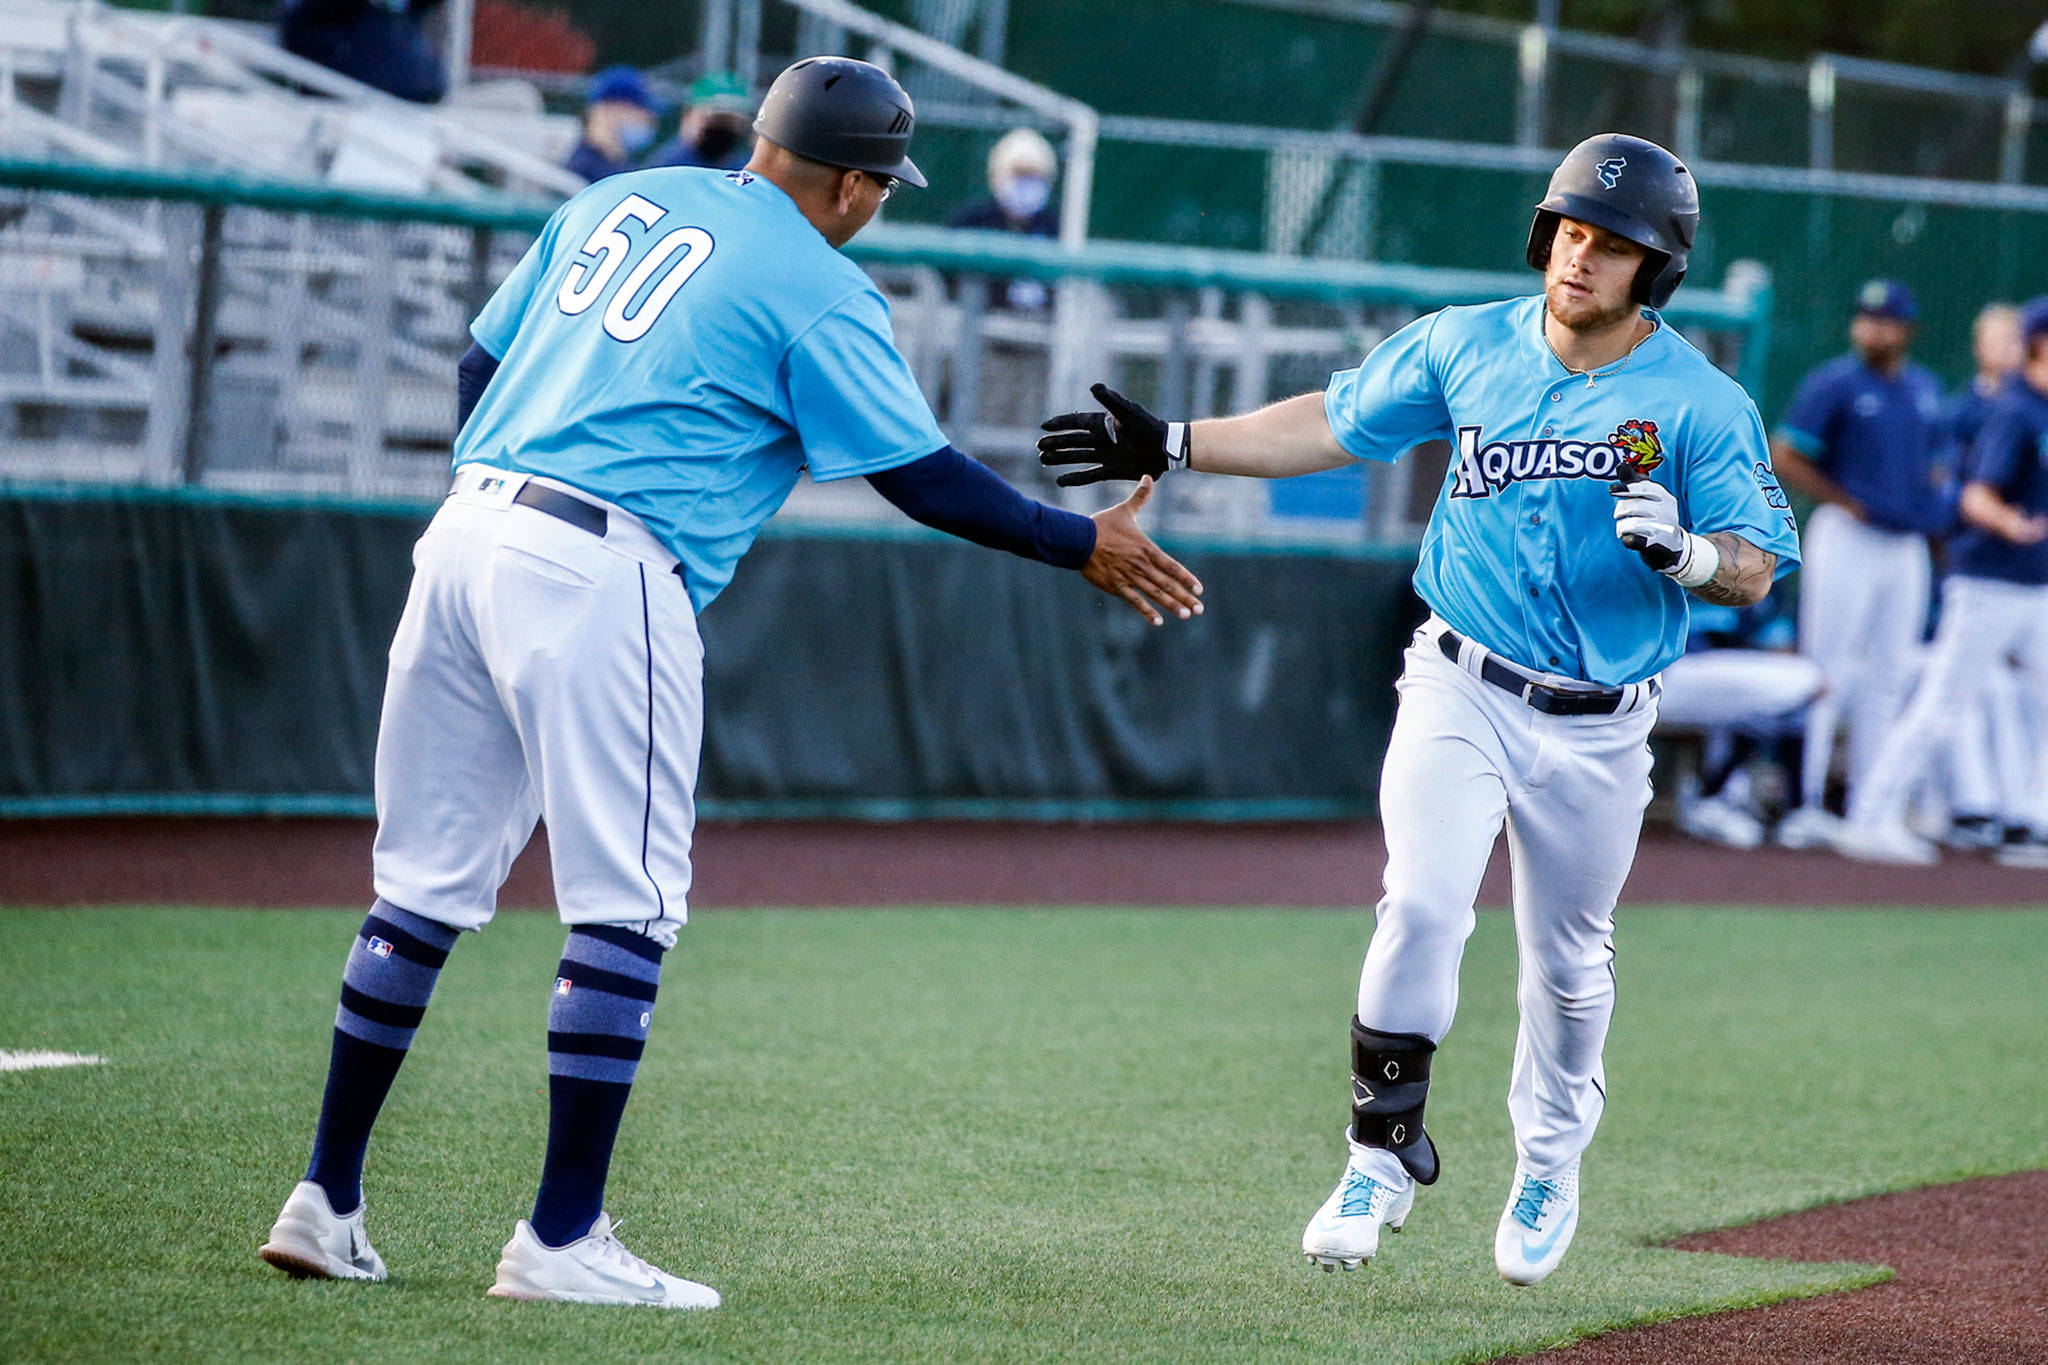 Kaden Polcovich celebrates while rounding the bases after one of his five home runs this past week. (Kevin Clark / The Herald)